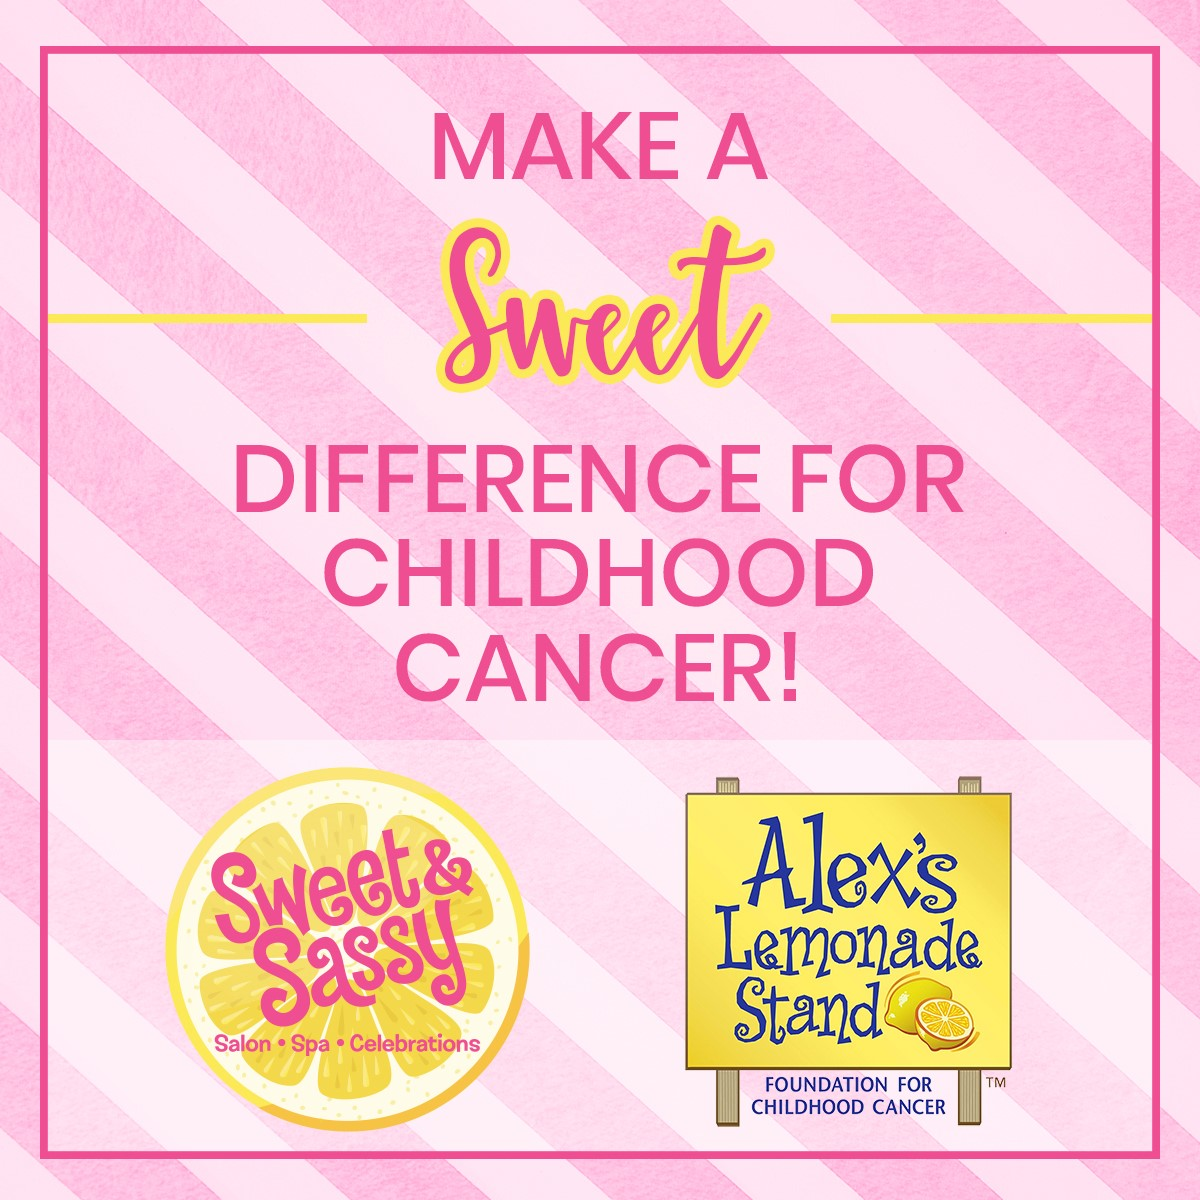 Sweet & Sassy's Pink Lemonade packages and partnership with Alex's Lemonade